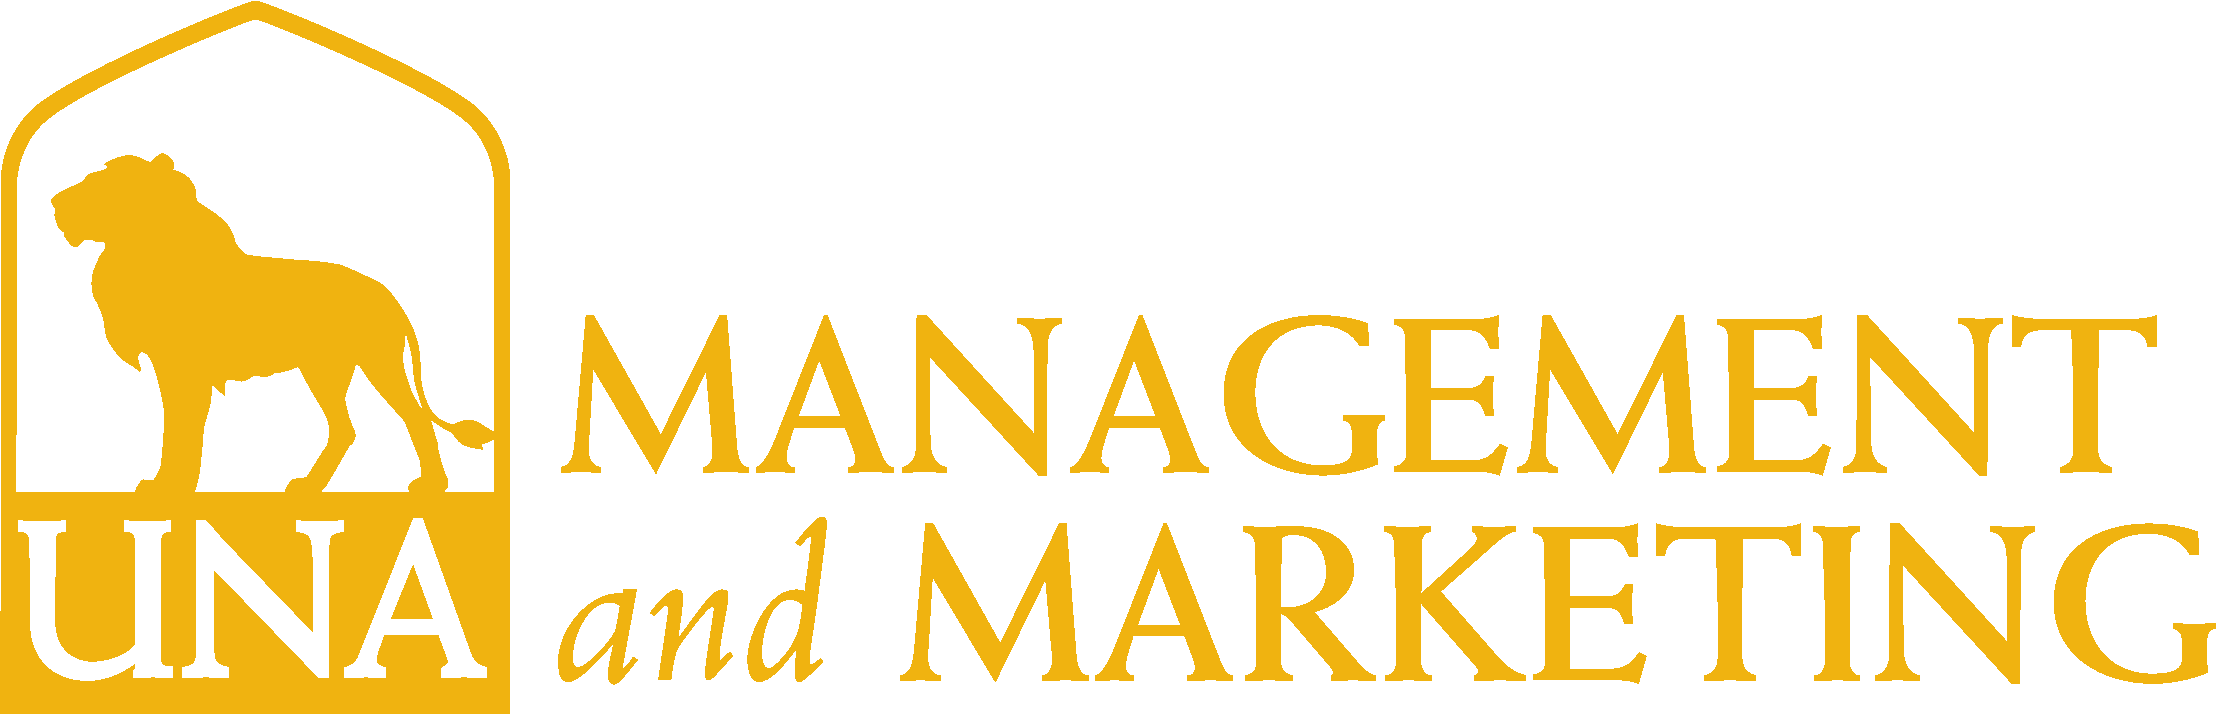 College of Business - Management and Marketing Logo - Gold - Version 3